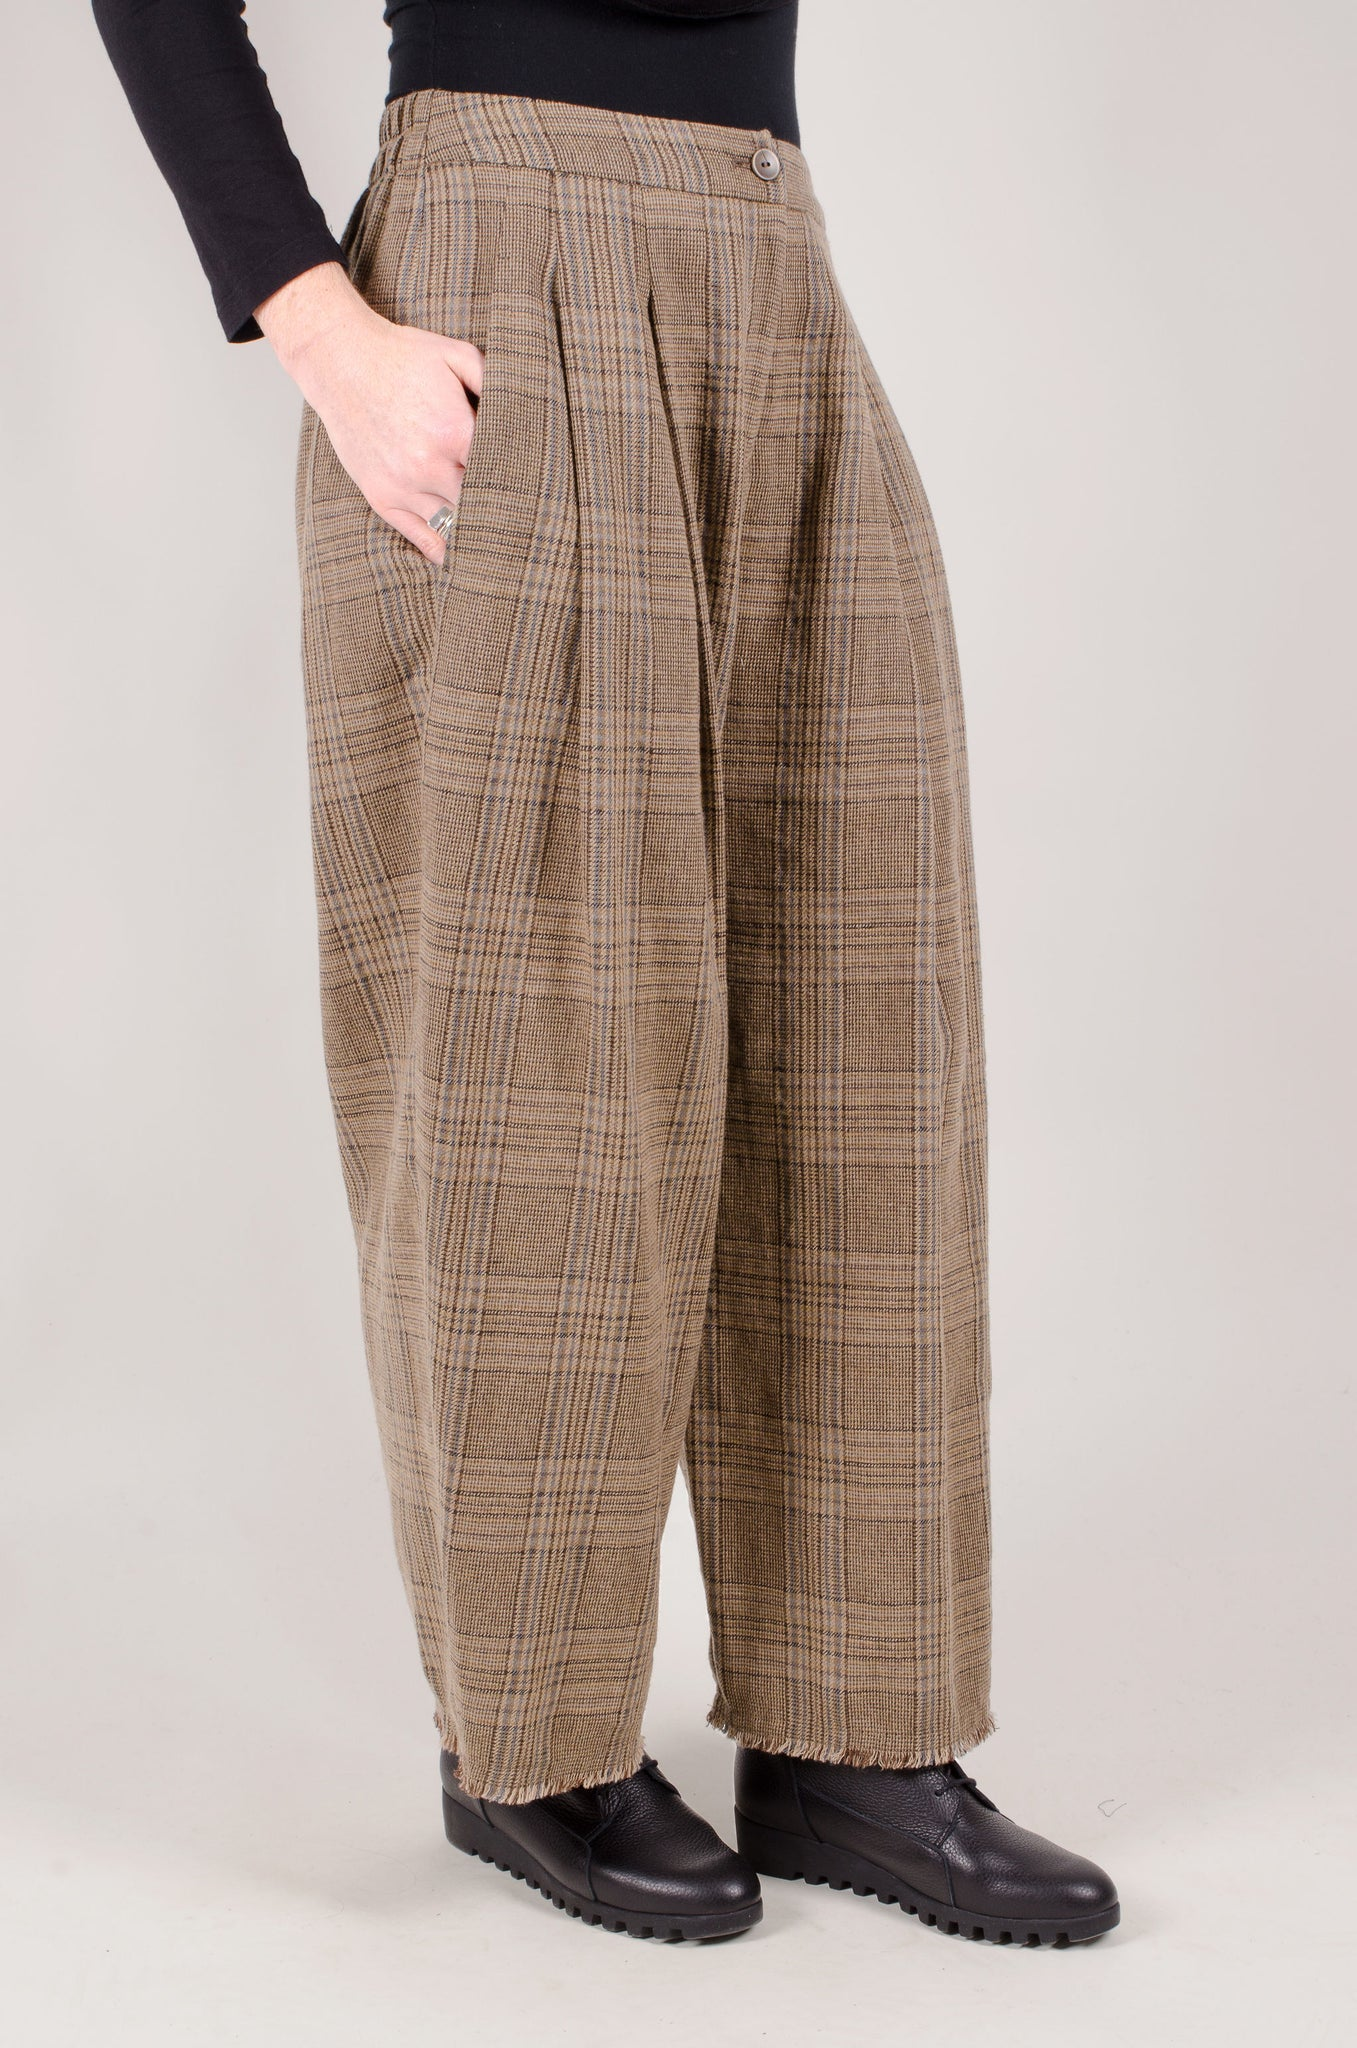 OSKA - Serapia Trouser - Camel Tweed